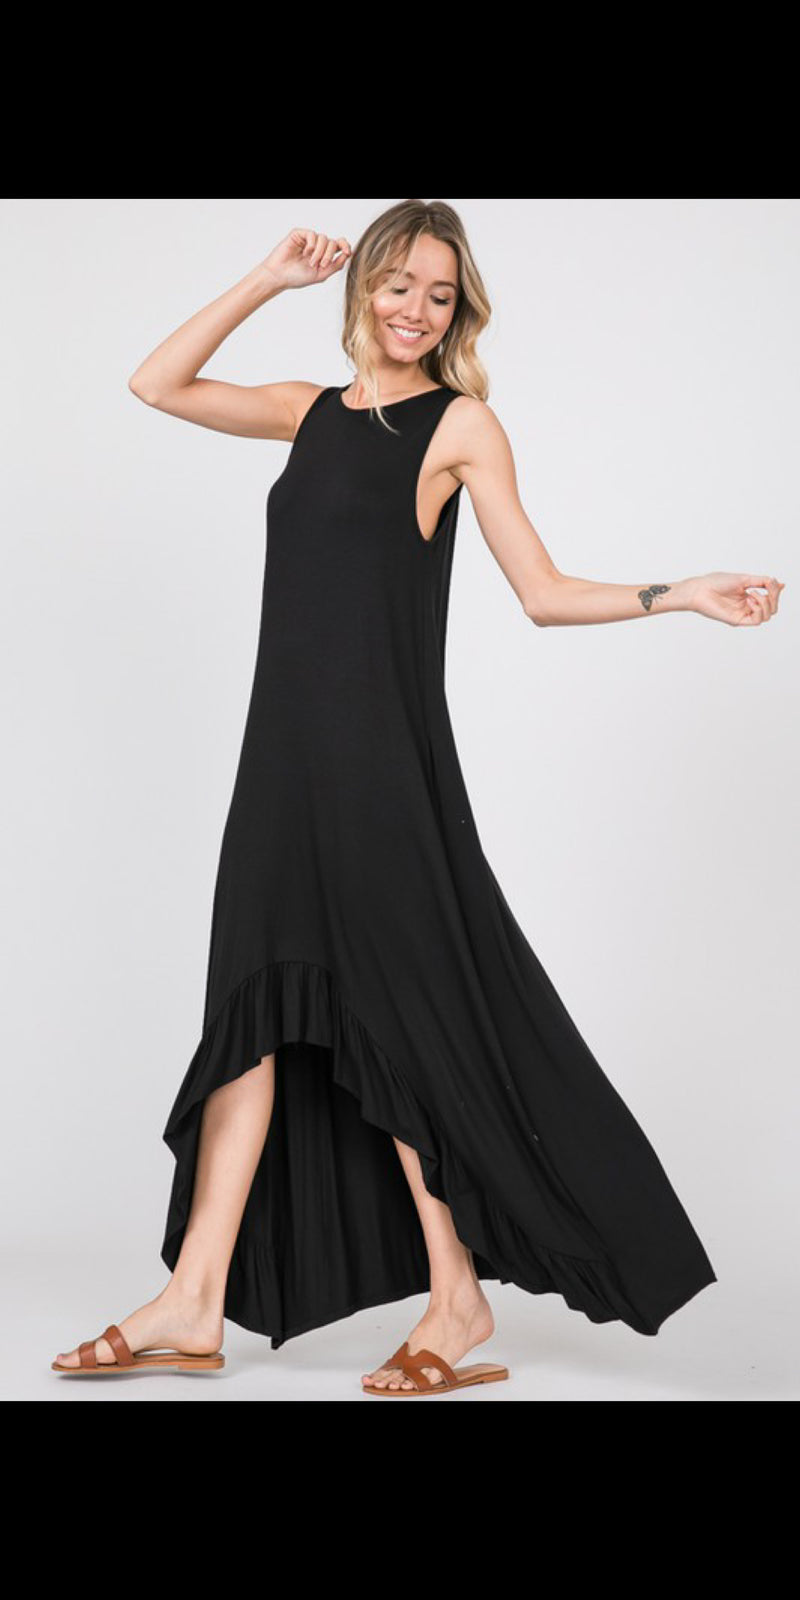 Brogan Black Maxi  Dress - Also in Plus Size